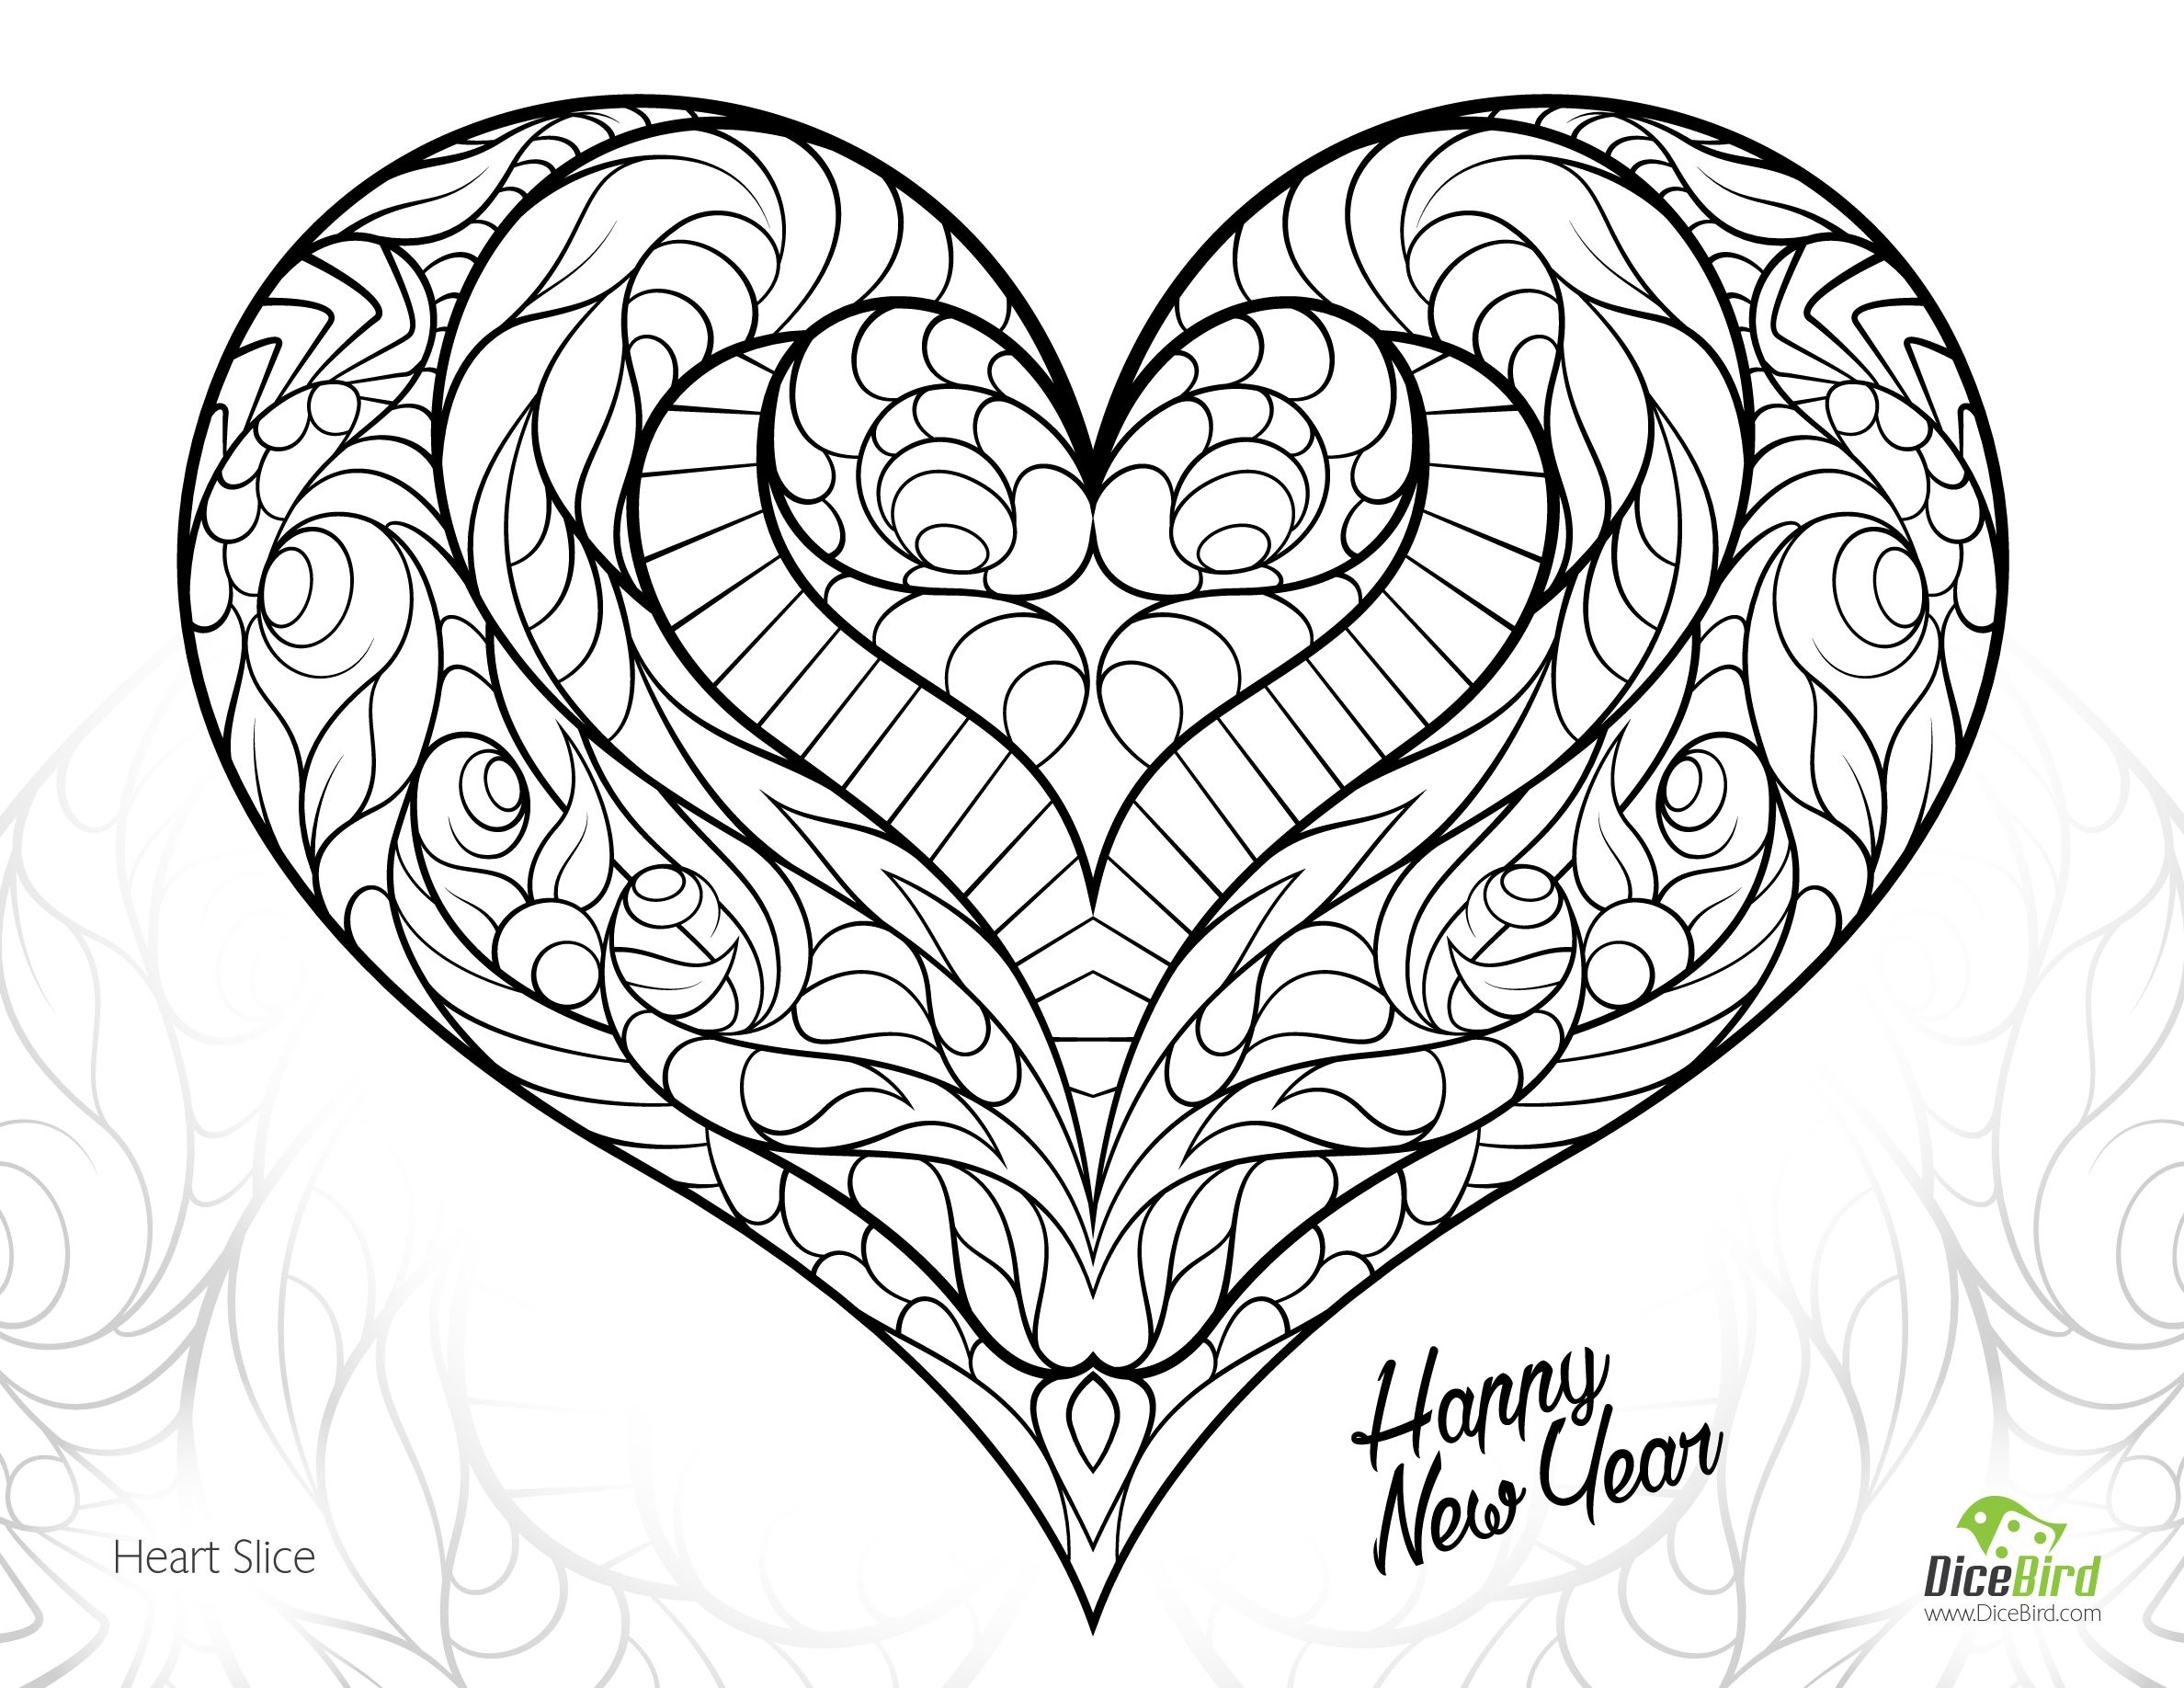 Dicebird Com Love Coloring Pages Heart Coloring Pages Mandala Coloring Pages